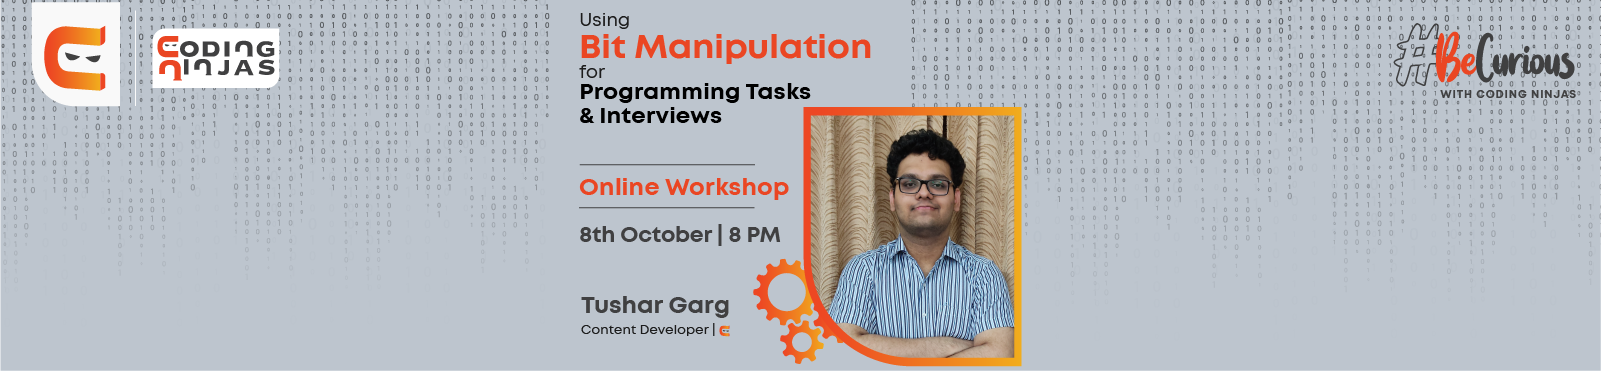 Workshop on Bit Manipulation for Programming Tasks & Interviews